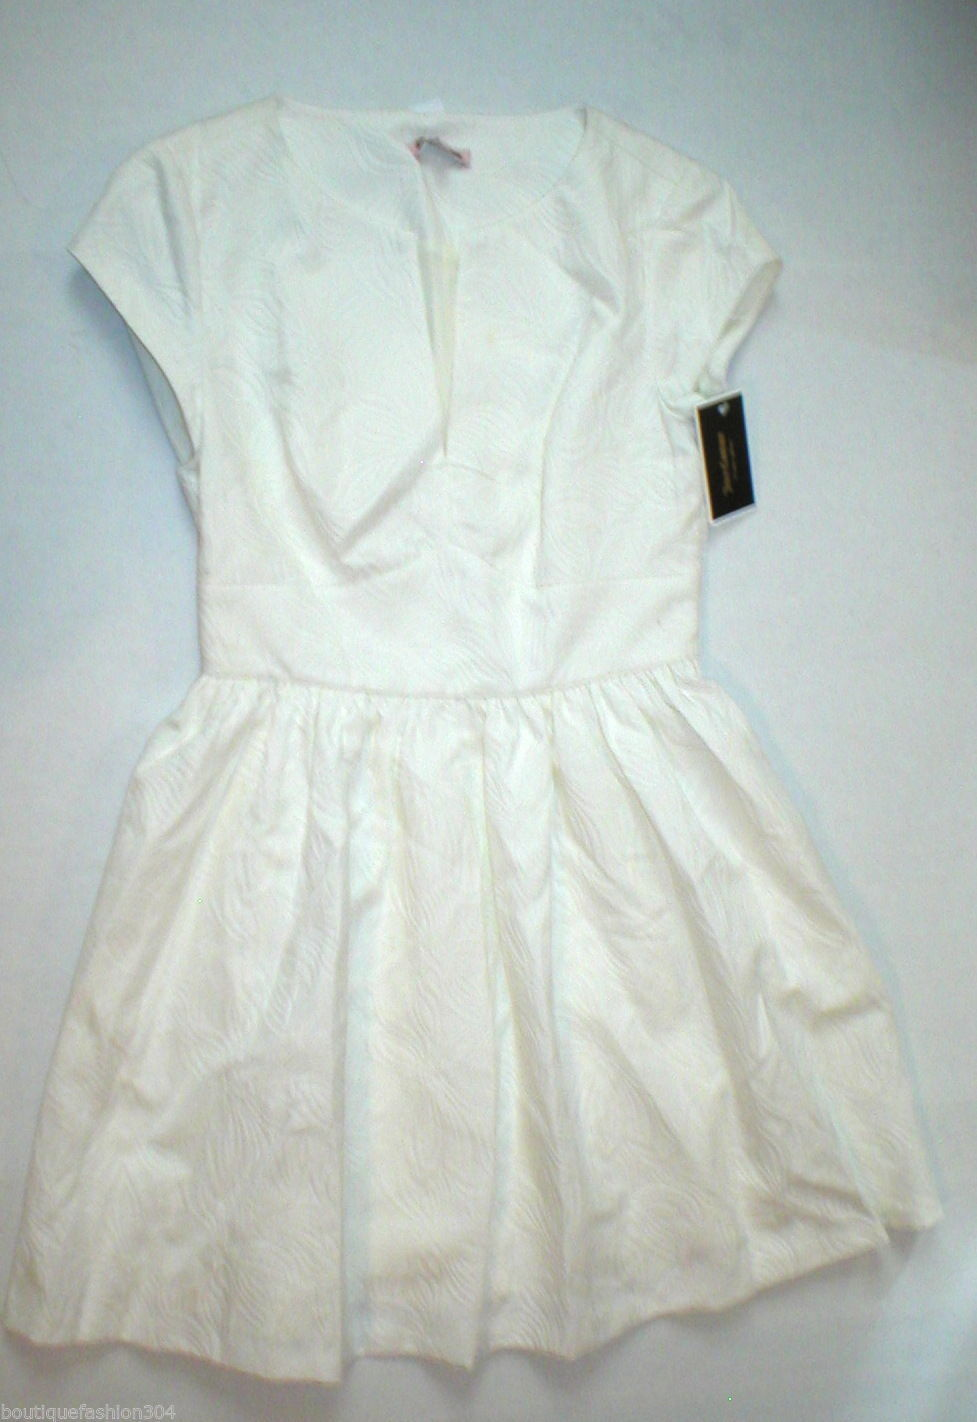 New Juicy Couture Dress Short Womens 4 NWT $198 Off White Floral Brocade Textur